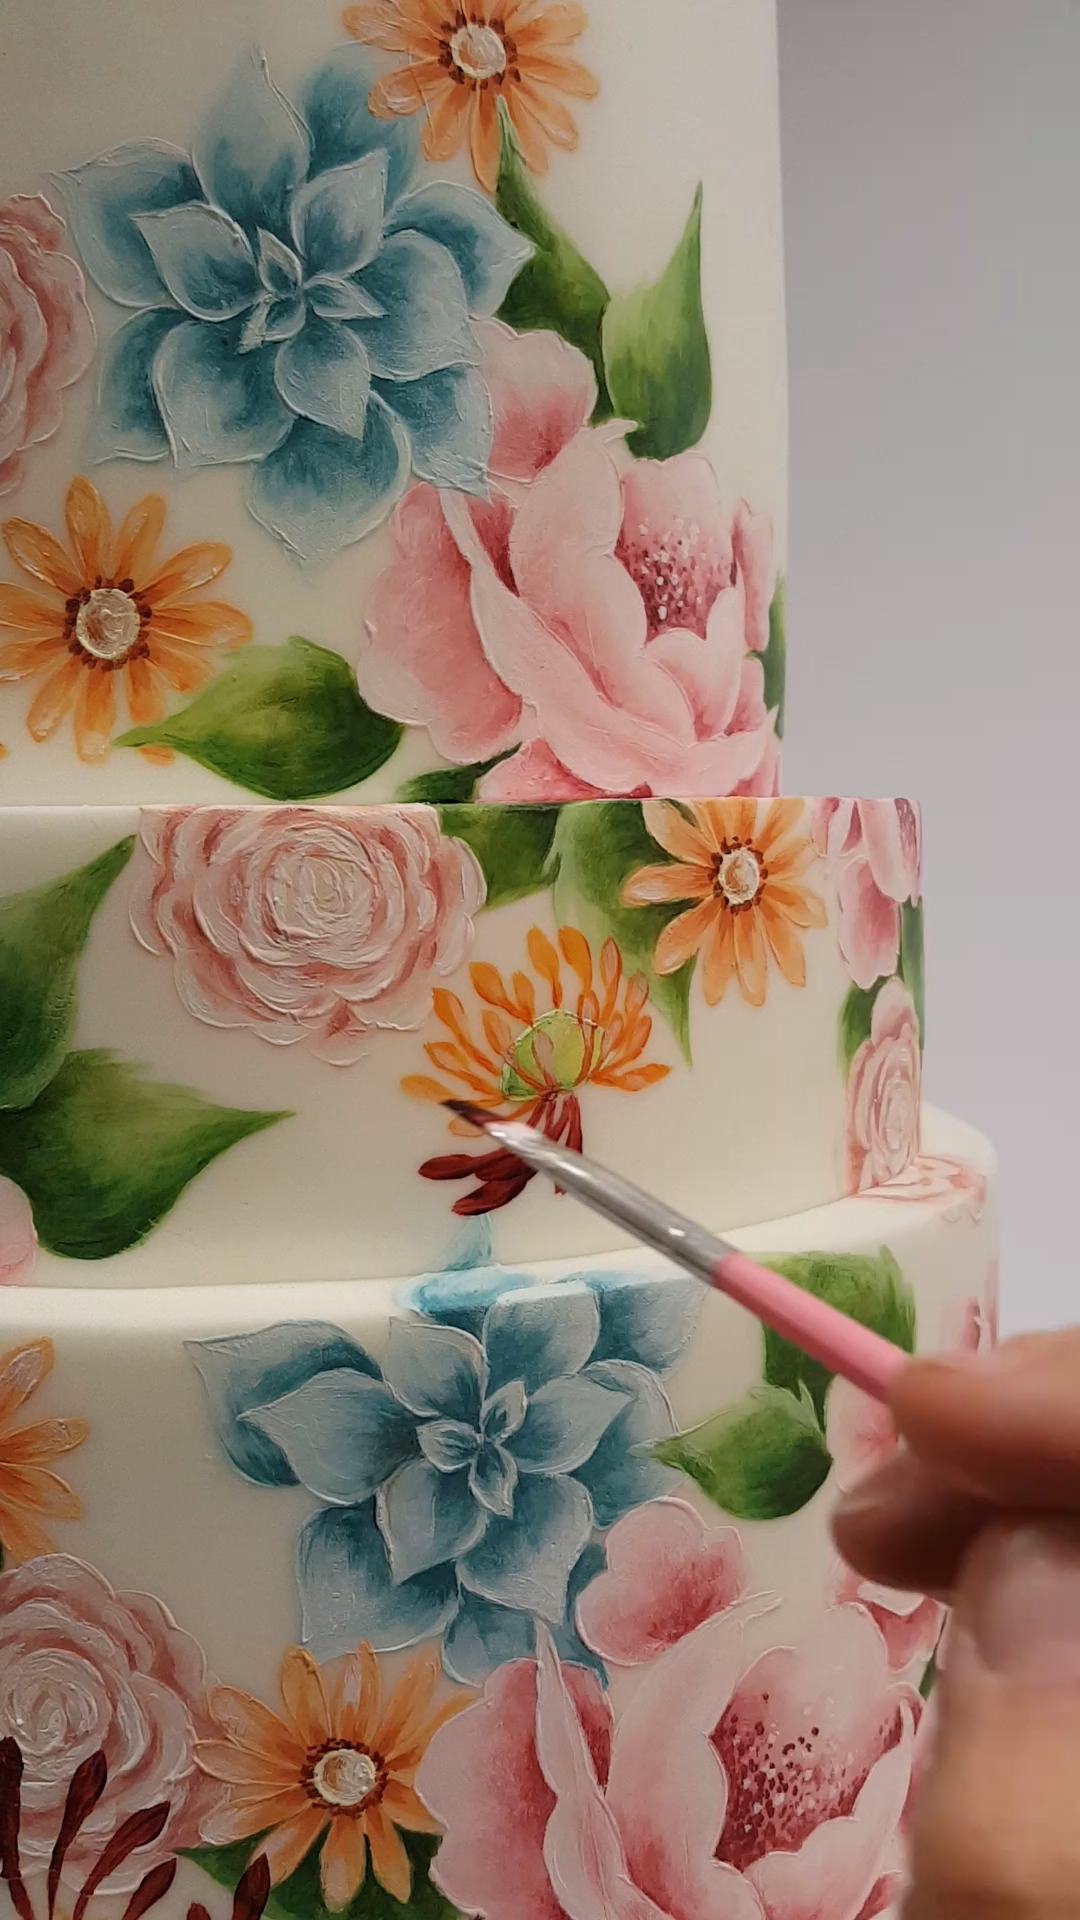 A little video of me hand painting my summer garden cake created for Cake Masters Magazine. The cake is free hand painted using cocoa butter mixed with edible dust colours directly onto sugarpaste.